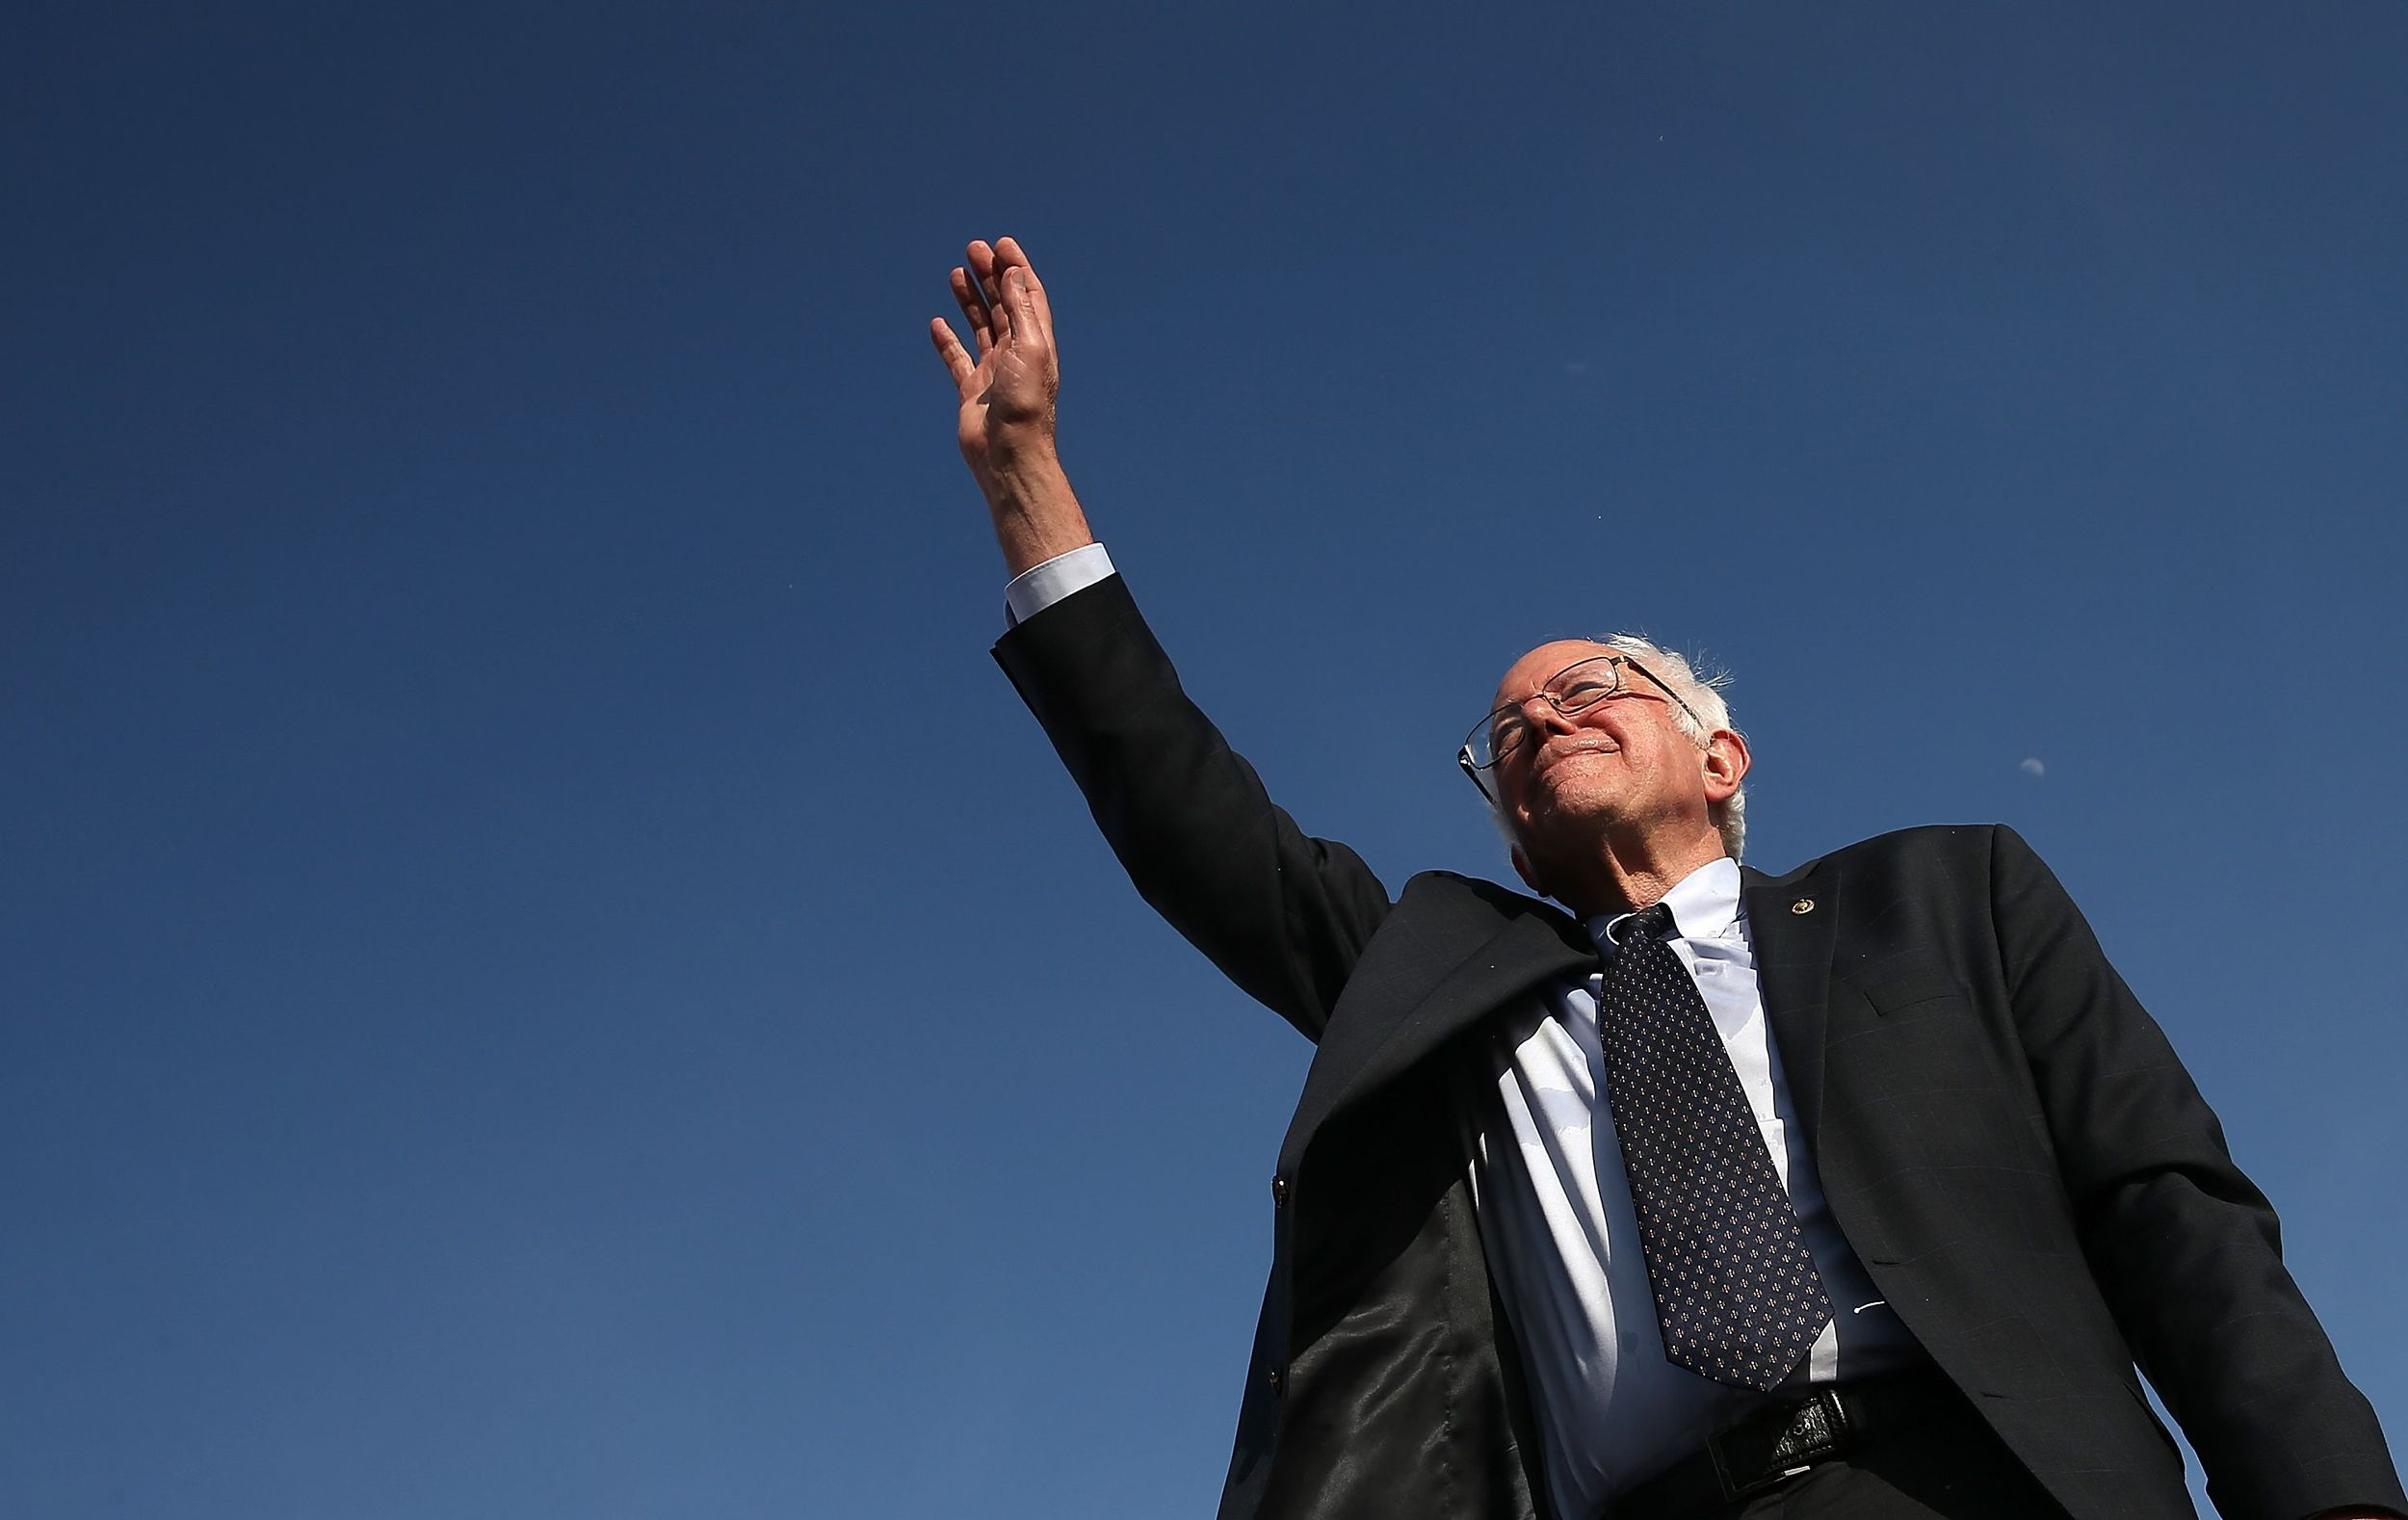 Bernie Won't Win The Nomination, But This Is What His Success Says About America   Even though Bernie didn't make it into the 2016 general election, his campaign has proven that the kind of politics he represents is much more widely supported than most realized, and has already started pushing America toward radical change.